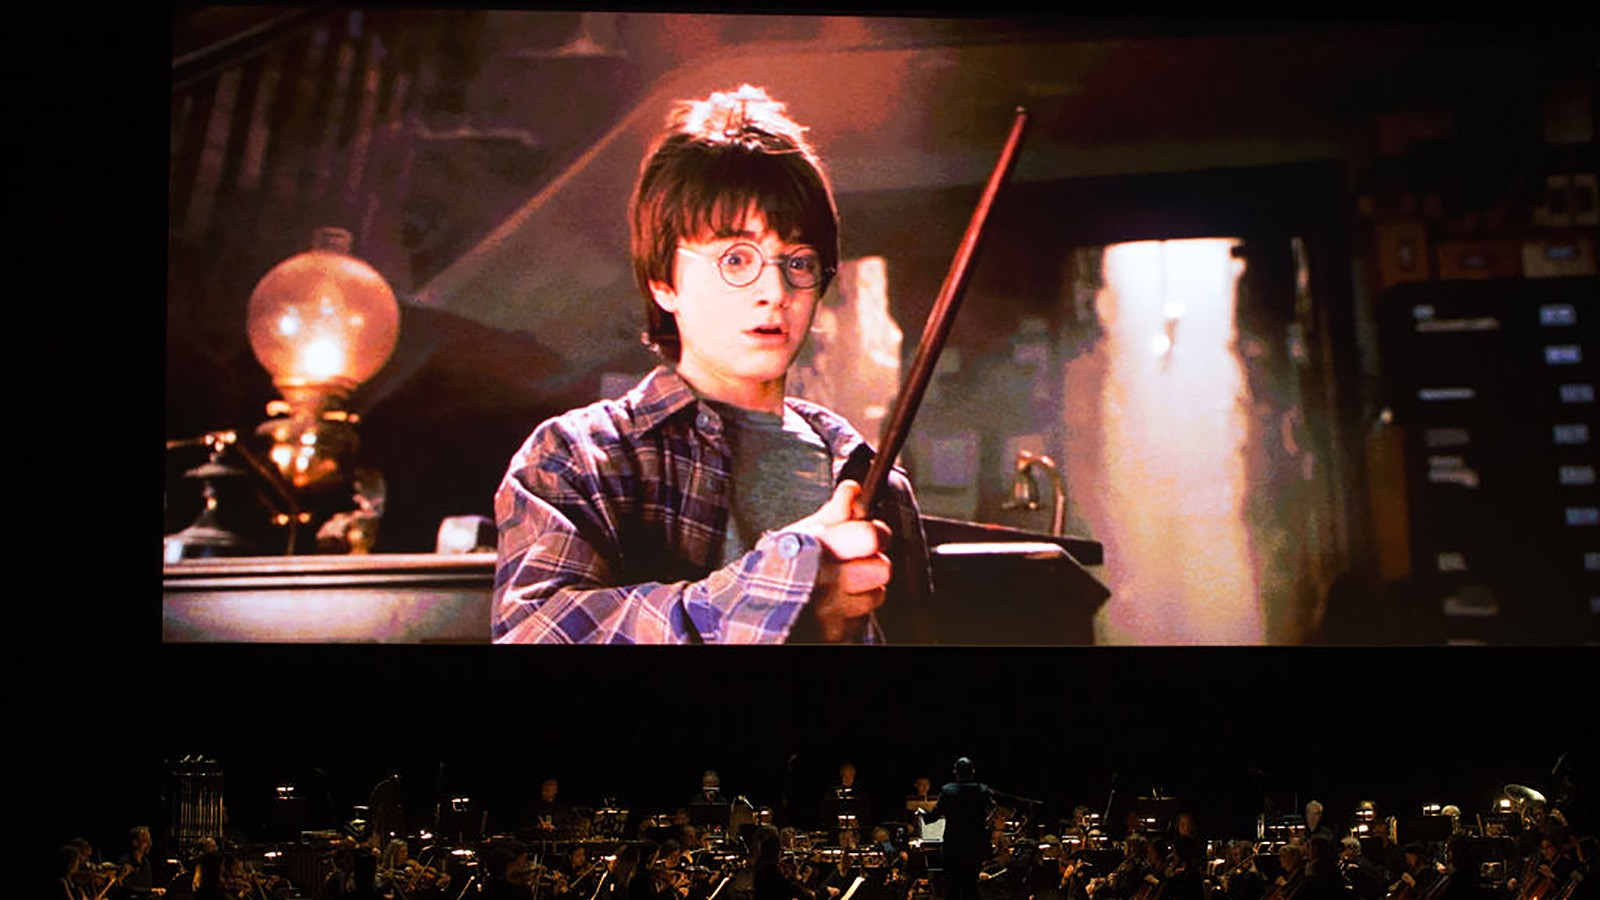 harry potter and sorcerer's stone concert